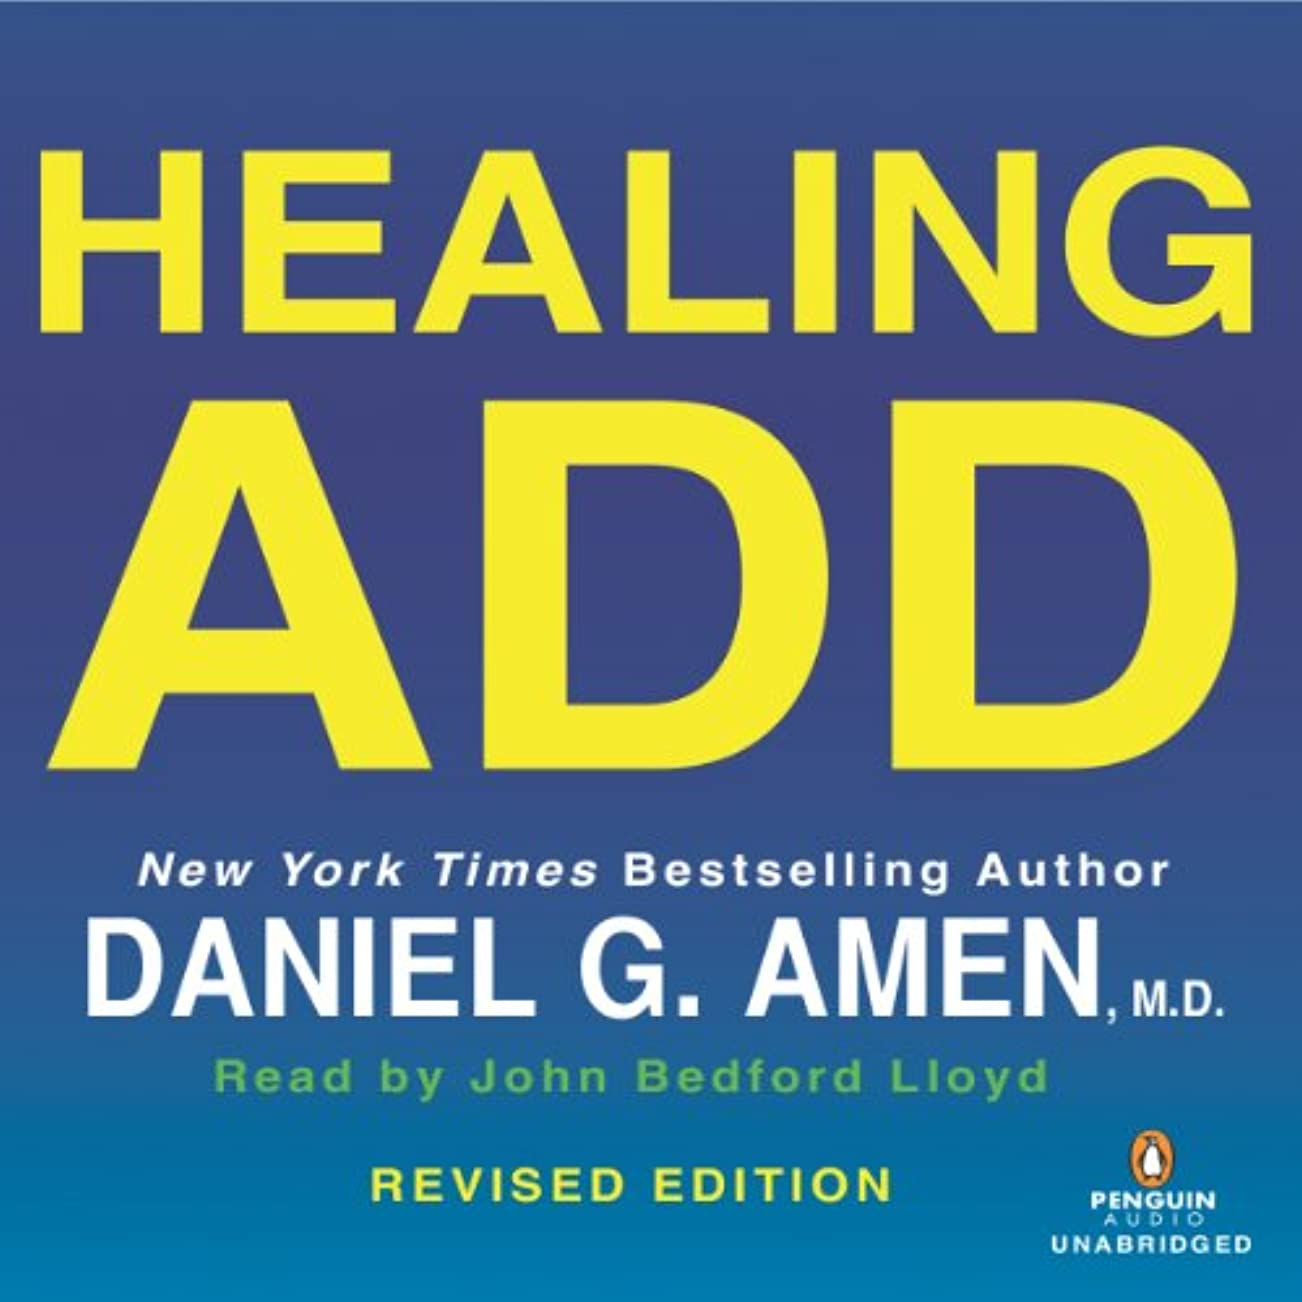 酸度破壊的な悪化させるHealing ADD Revised Edition: The Breakthrough Program That Allows You to See and Heal the 7 Types of ADD